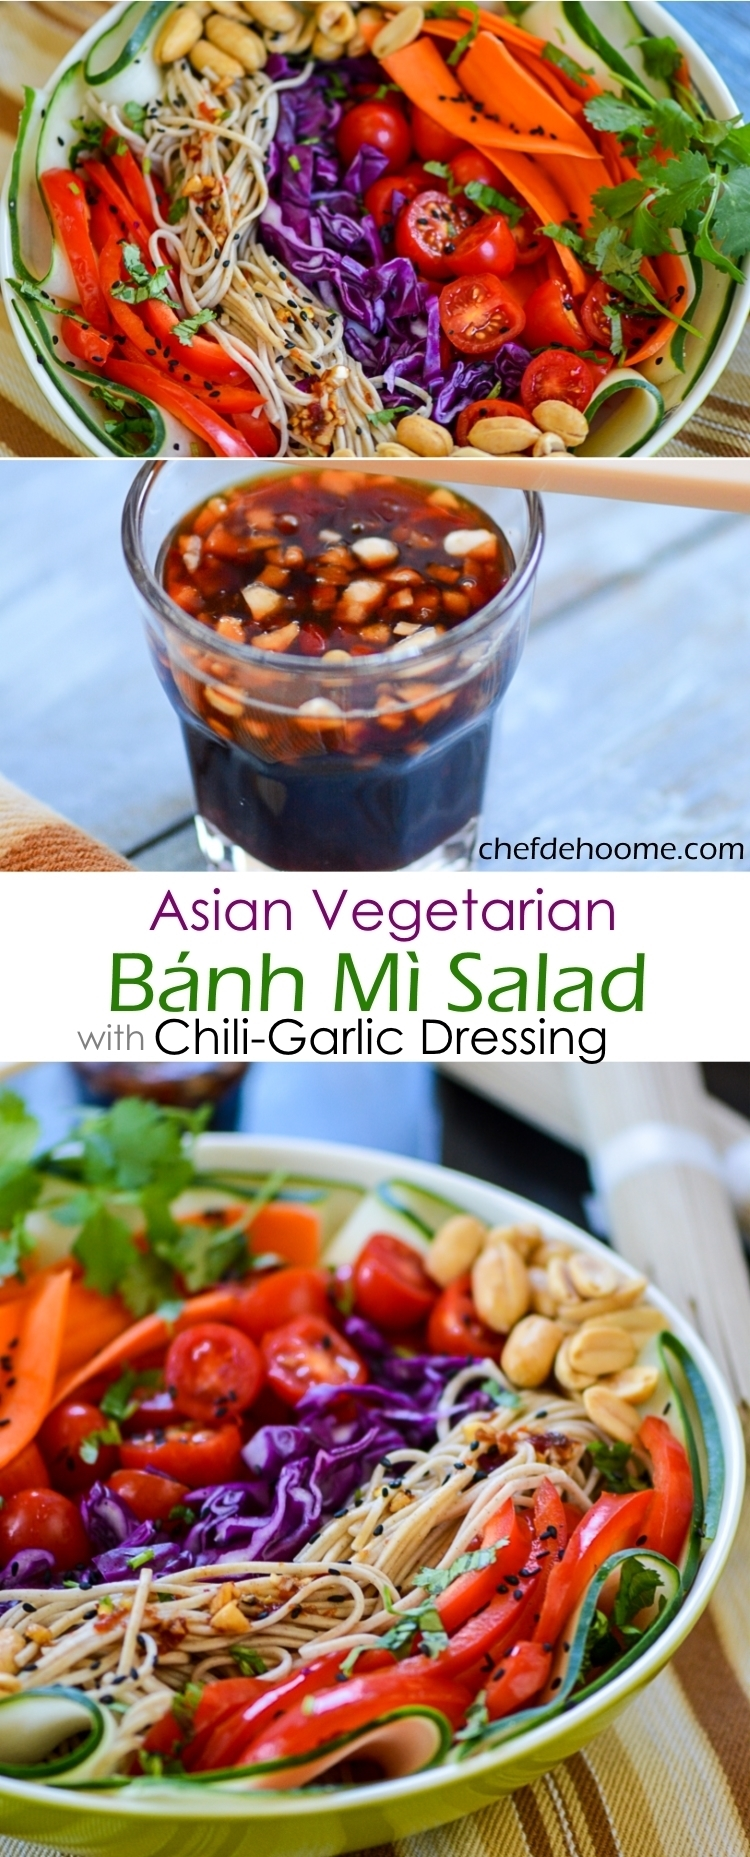 Asian Vegetarian Gluten Free Banh Mi Salad with Sweet and Spicy Chili-Garlic Soy Dressing and Can be VEGAN | chefdehome.com